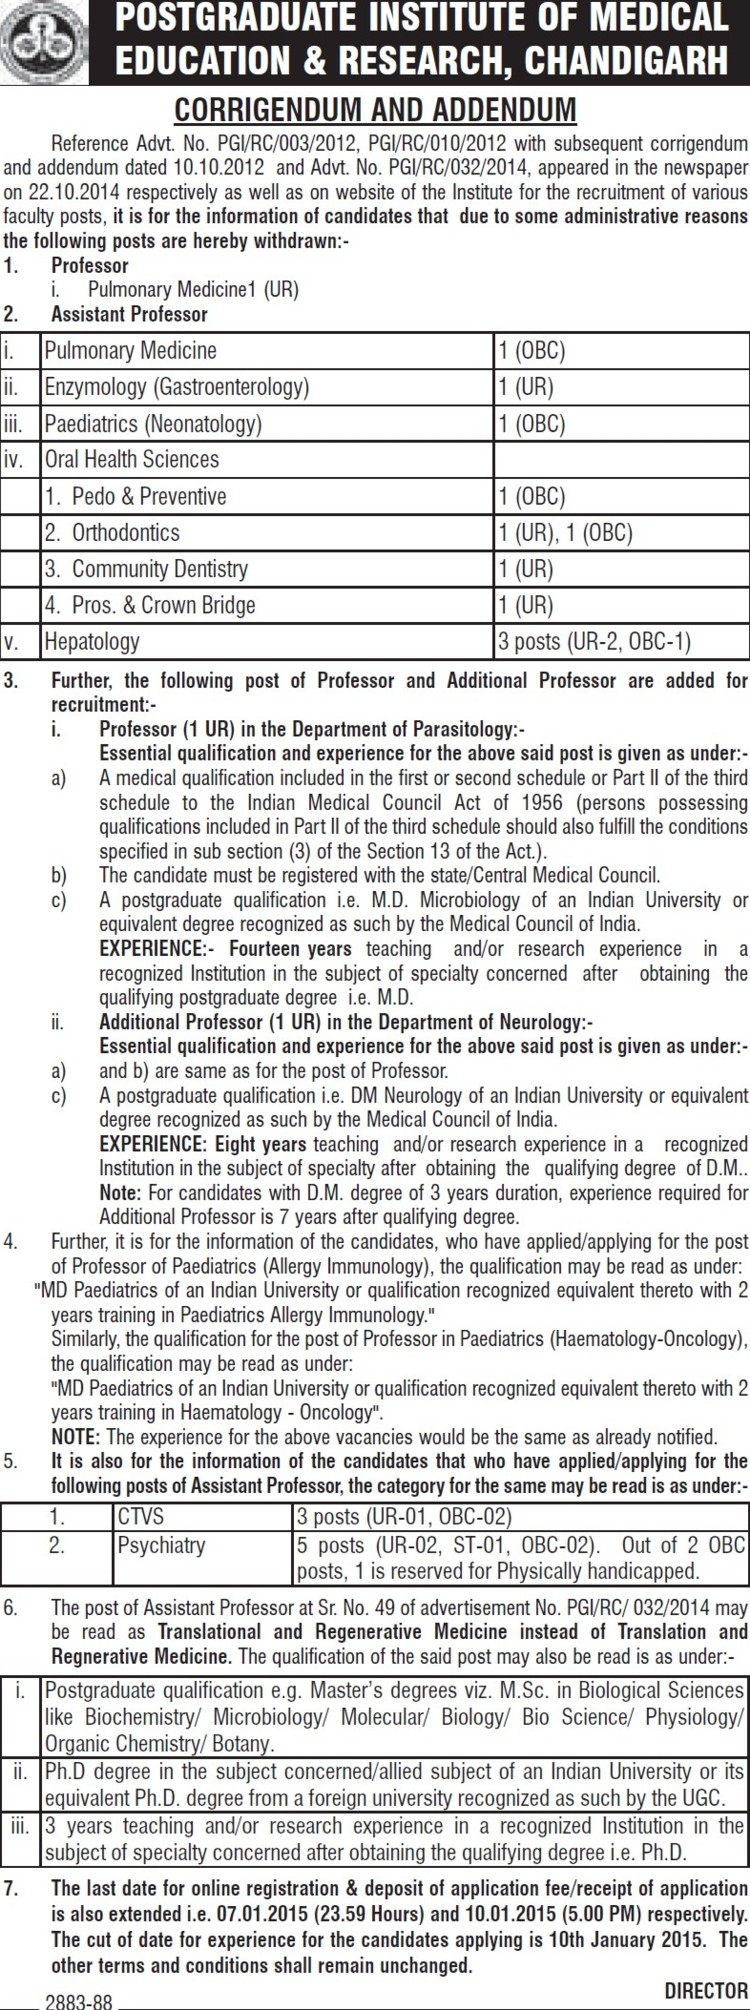 Asstt Professor for Hepatology (Post-Graduate Institute of Medical Education and Research (PGIMER))